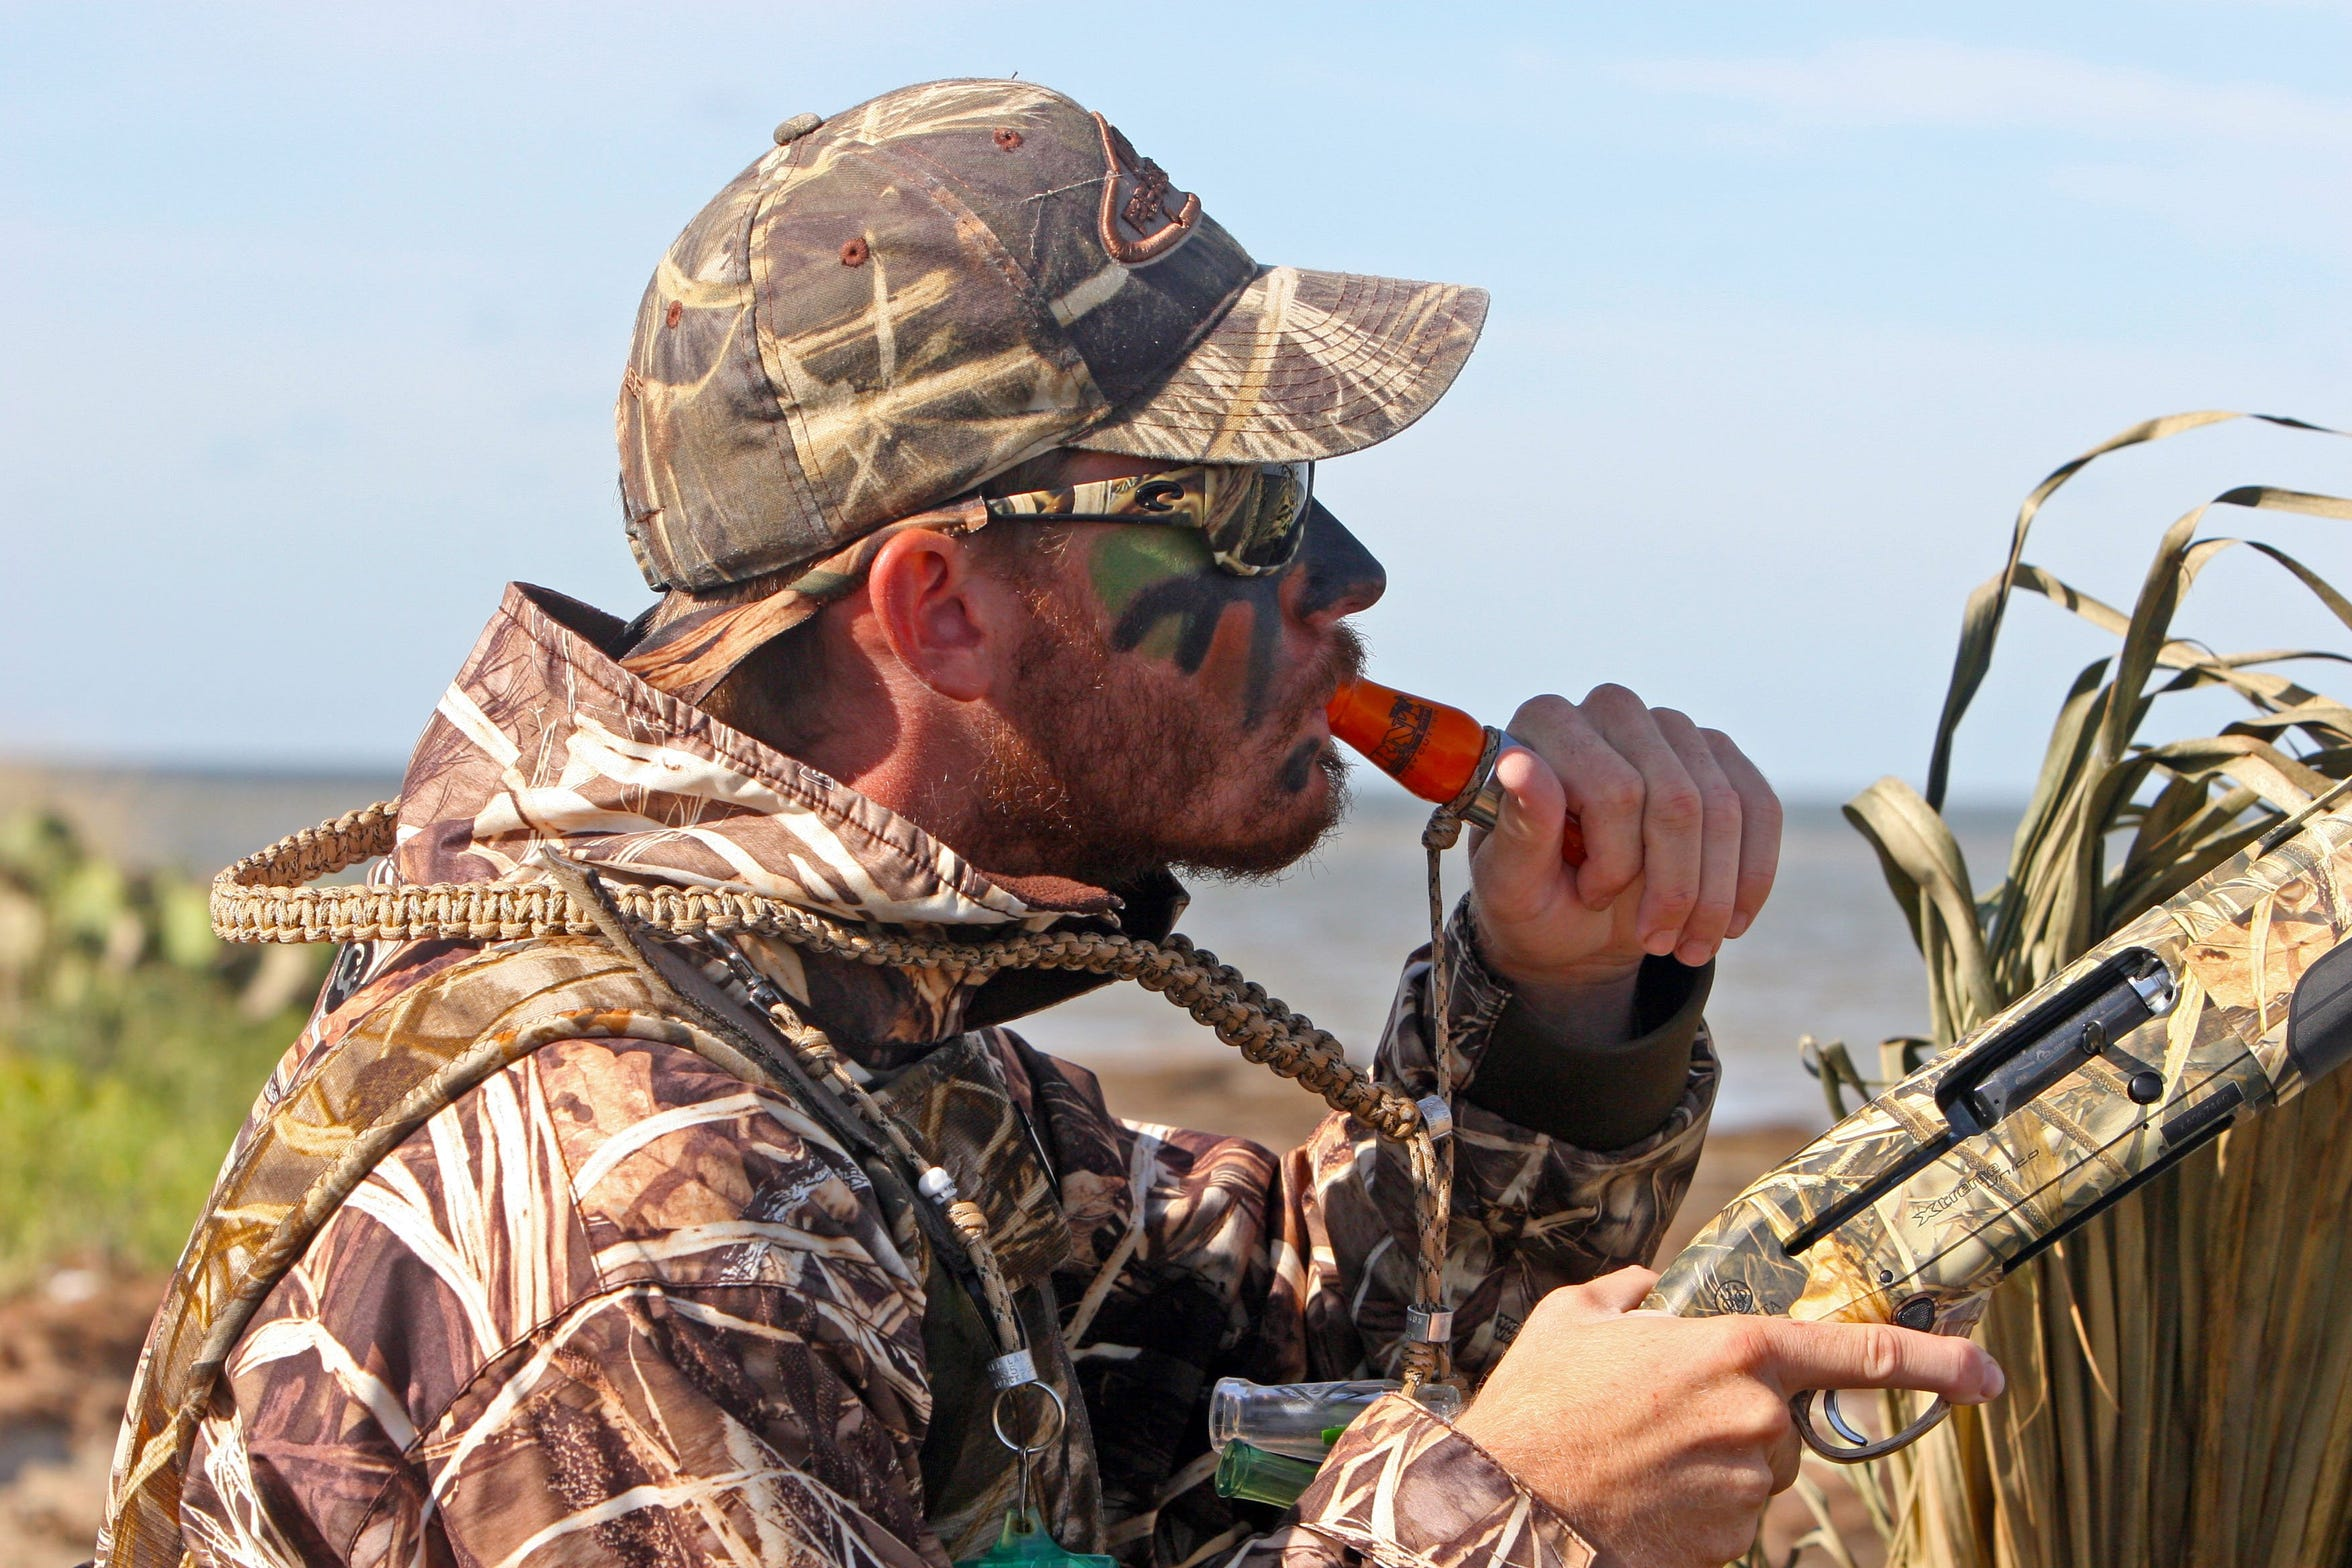 Duck hunting should be an enjoyable and relaxing activity, not an opportunity for conflict.